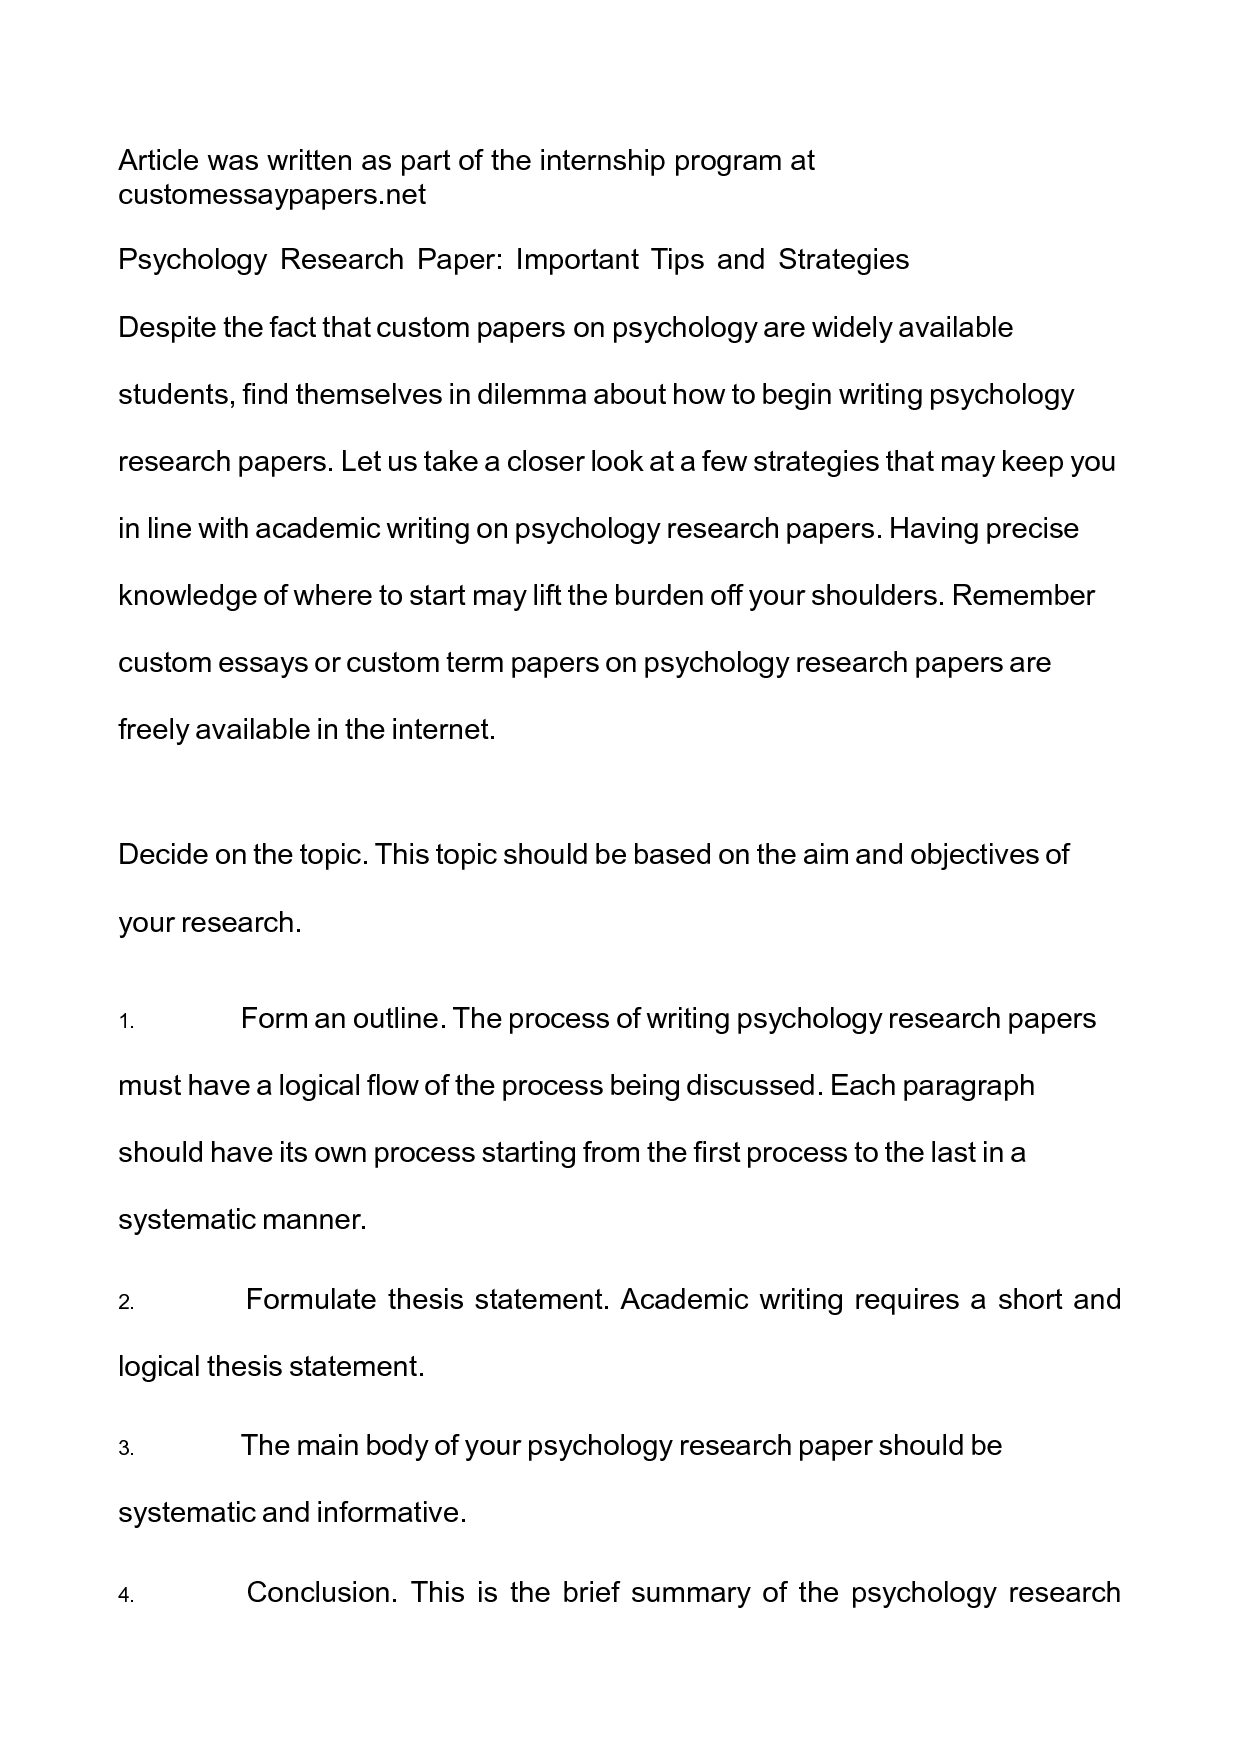 024 Psychology Research Paper Writing Archaicawful Services In Delhi Service Reviews Full